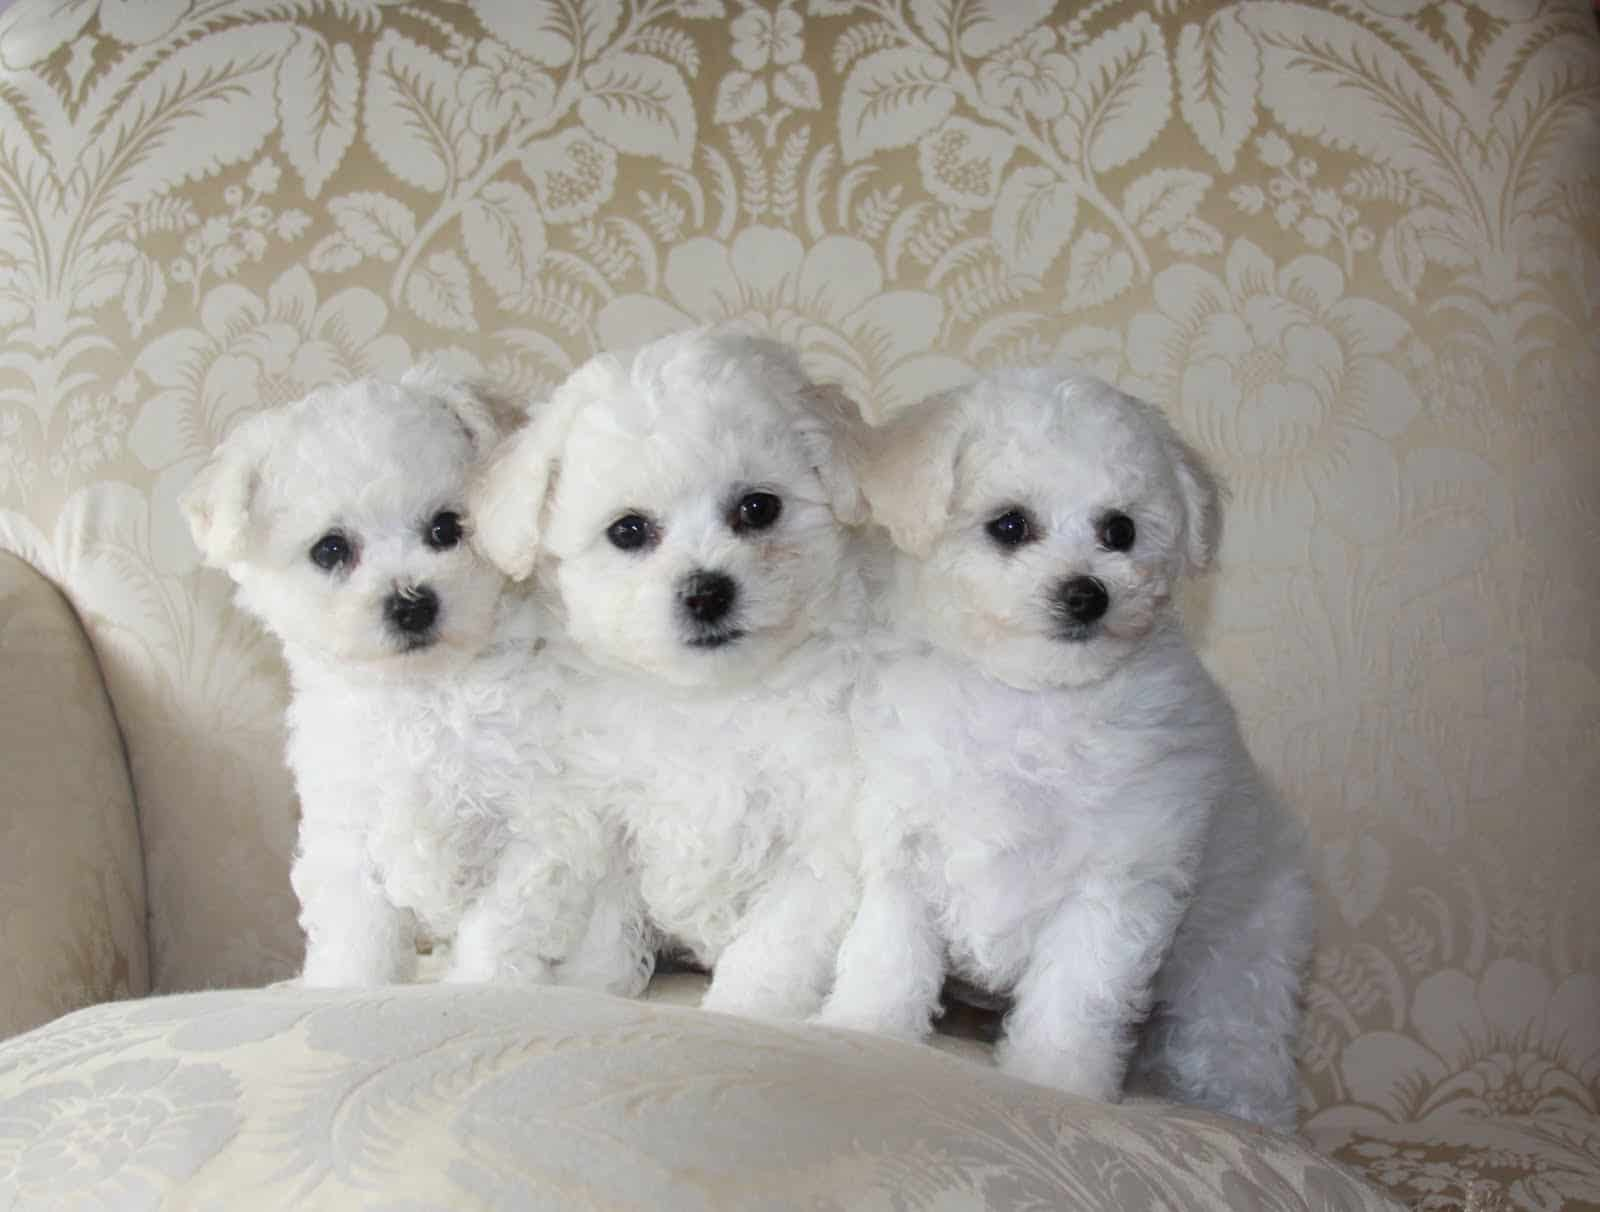 Bichon Frisé – small dog breed